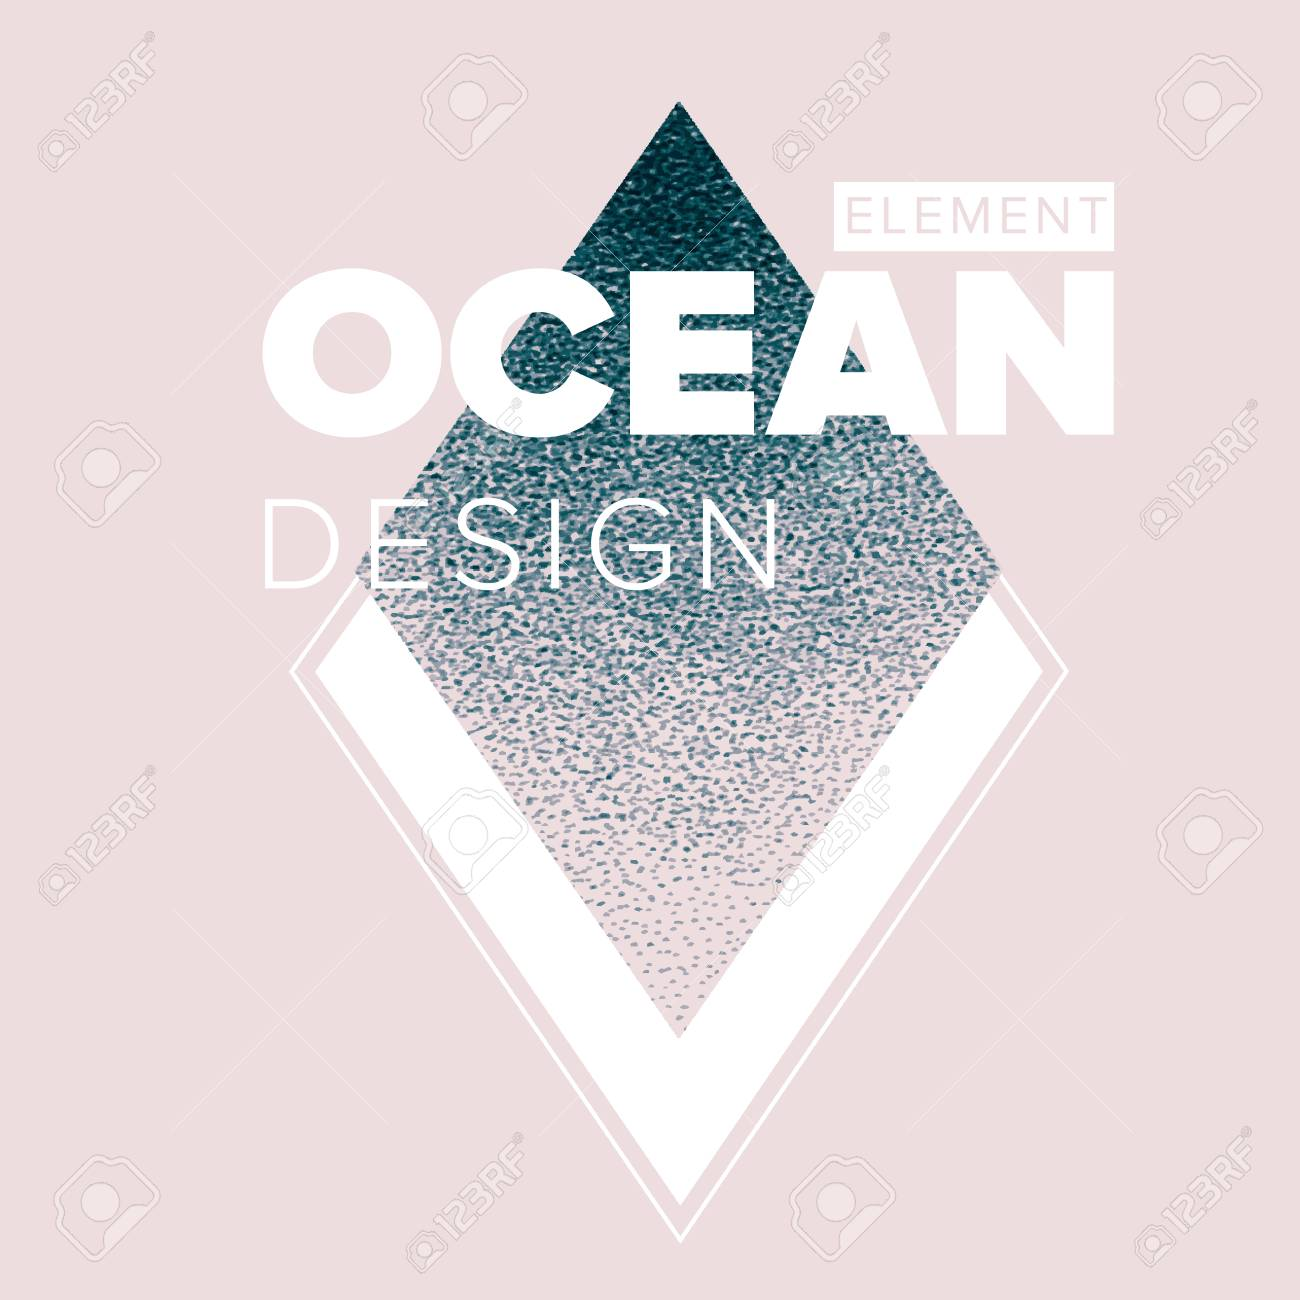 Geometric modern muted colors nautical design template for social geometric modern muted colors nautical design template for social media banner stock vector 71541667 pronofoot35fo Images